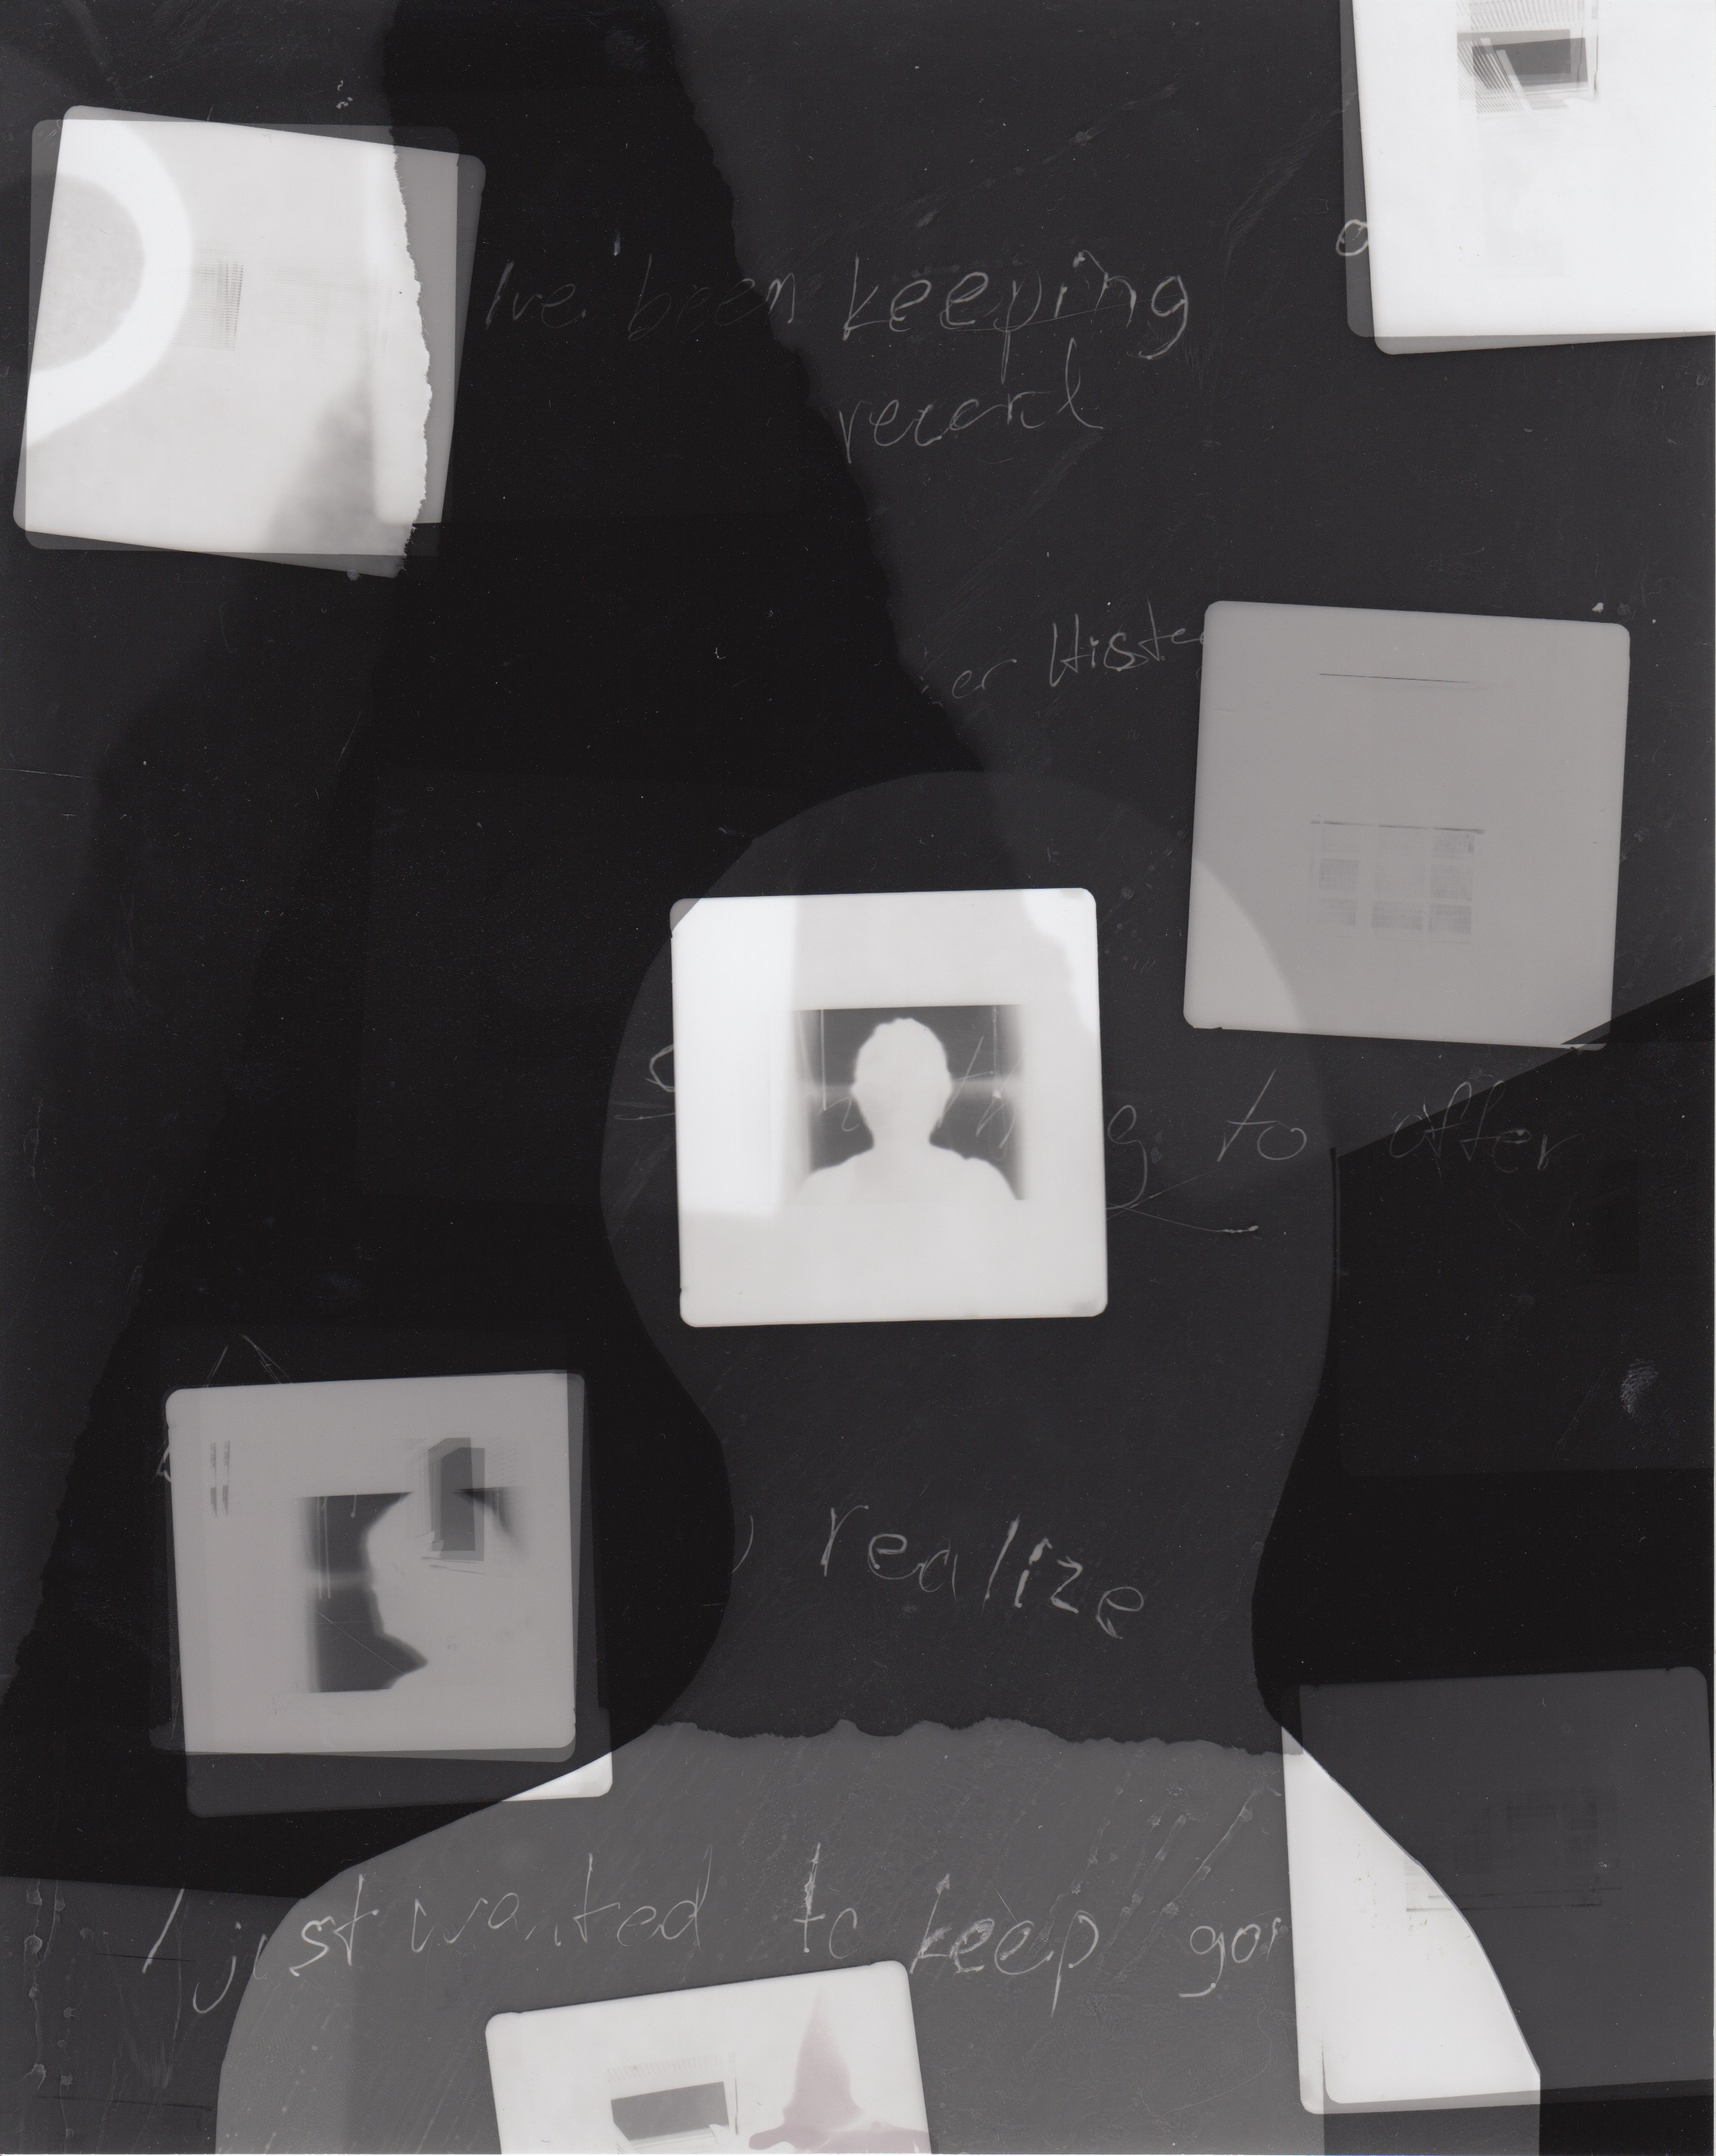 I've been keeping a record (1) - Photogram